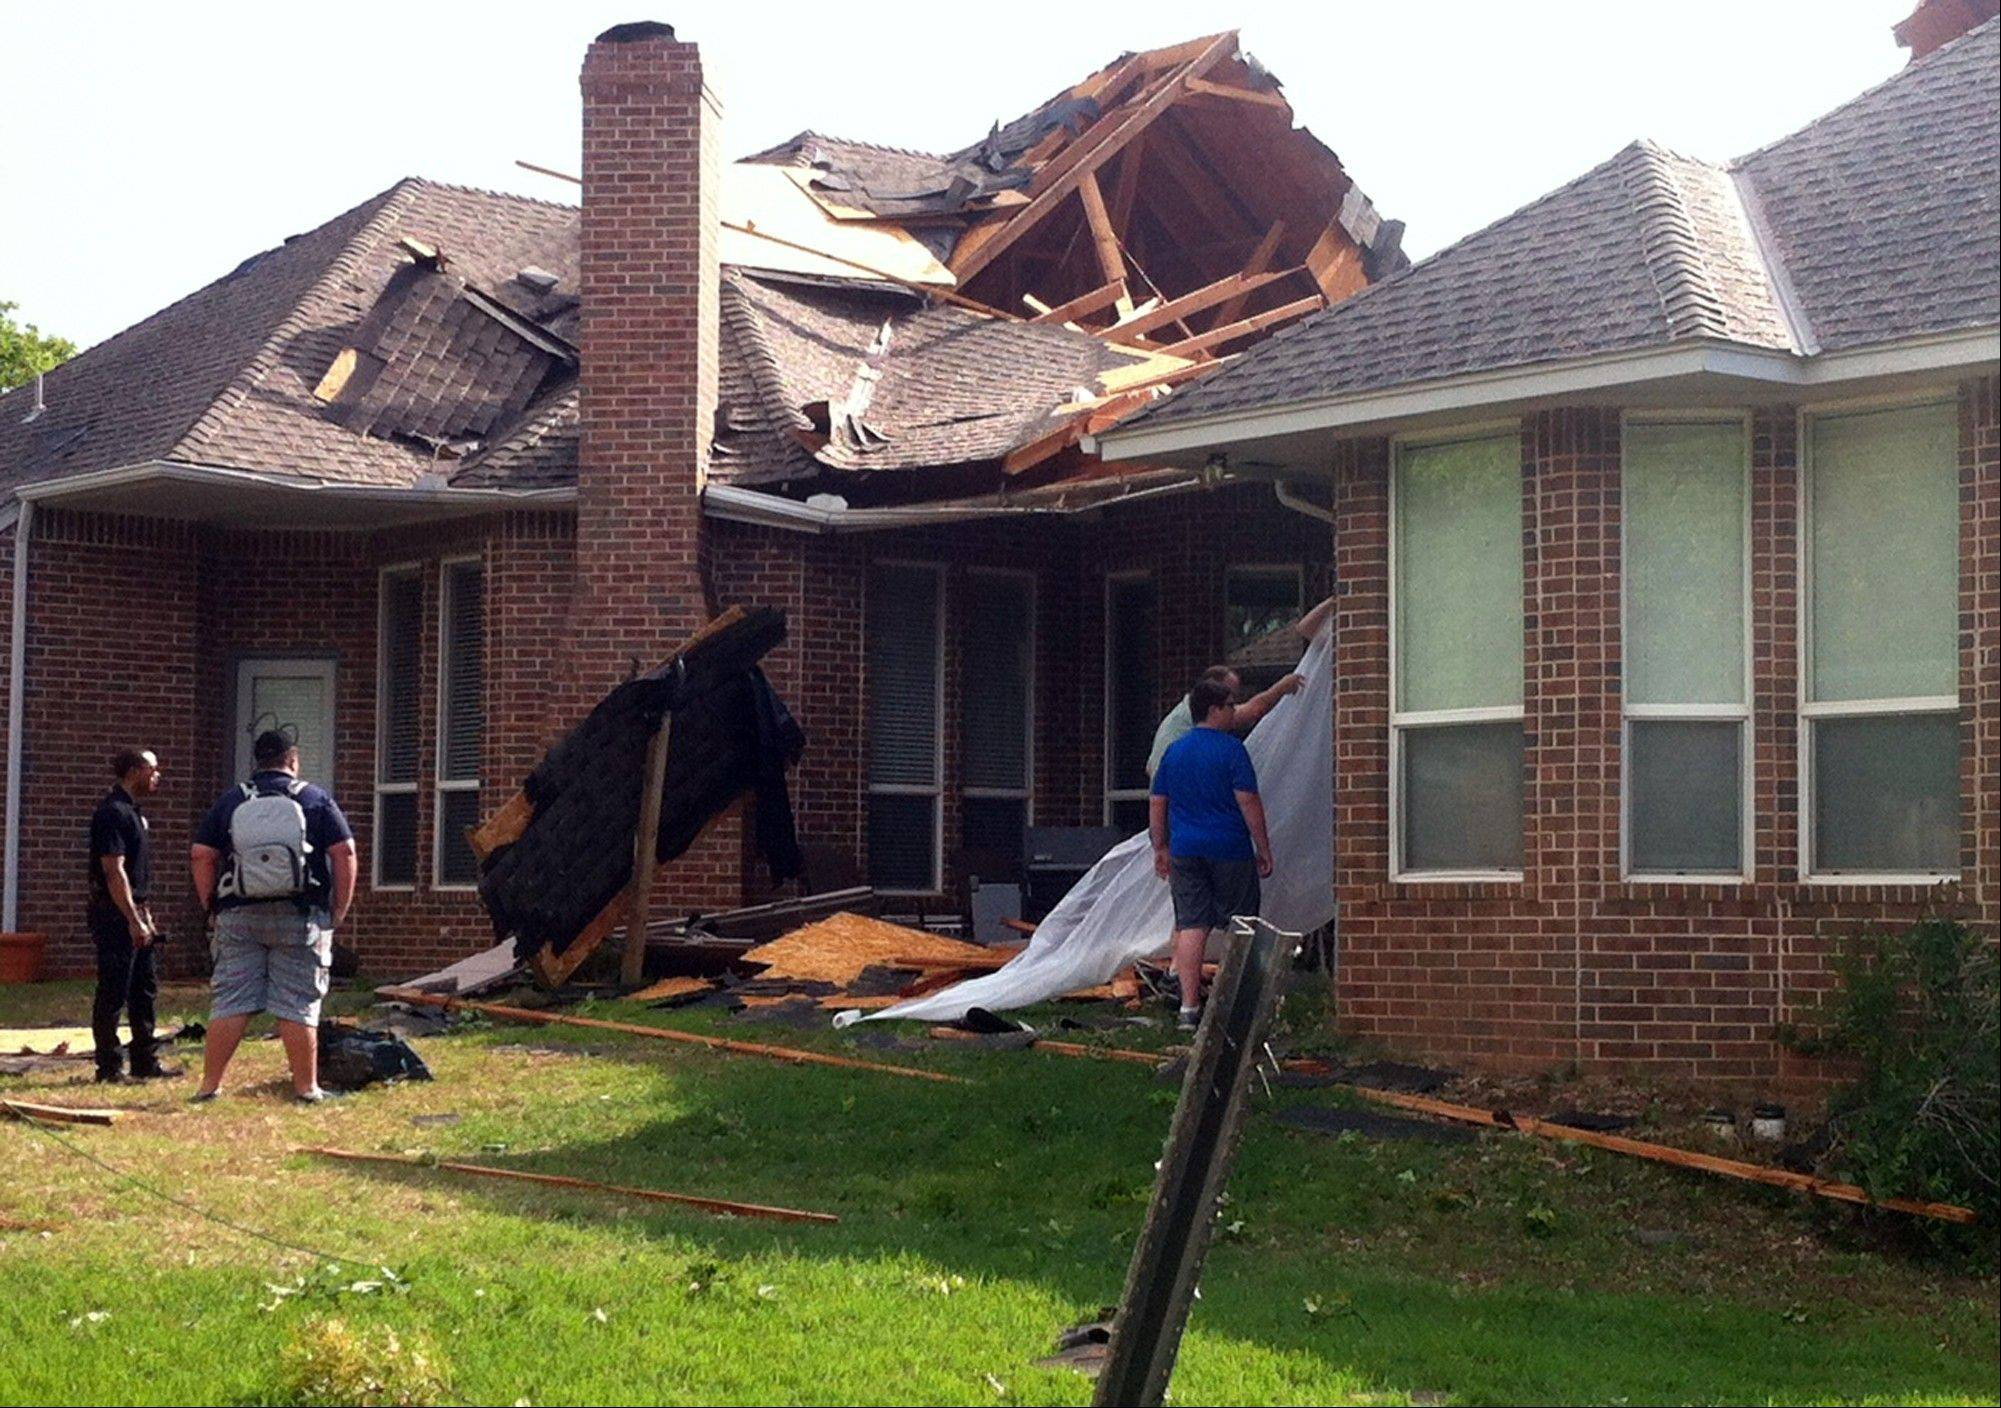 Residents of Edmond, Okla., survey storm damage from a tornado that hit their neighborhood Sunday, May 19, 2013. Forecasters had warned that the middle of the country would see severe weather throughout the weekend.